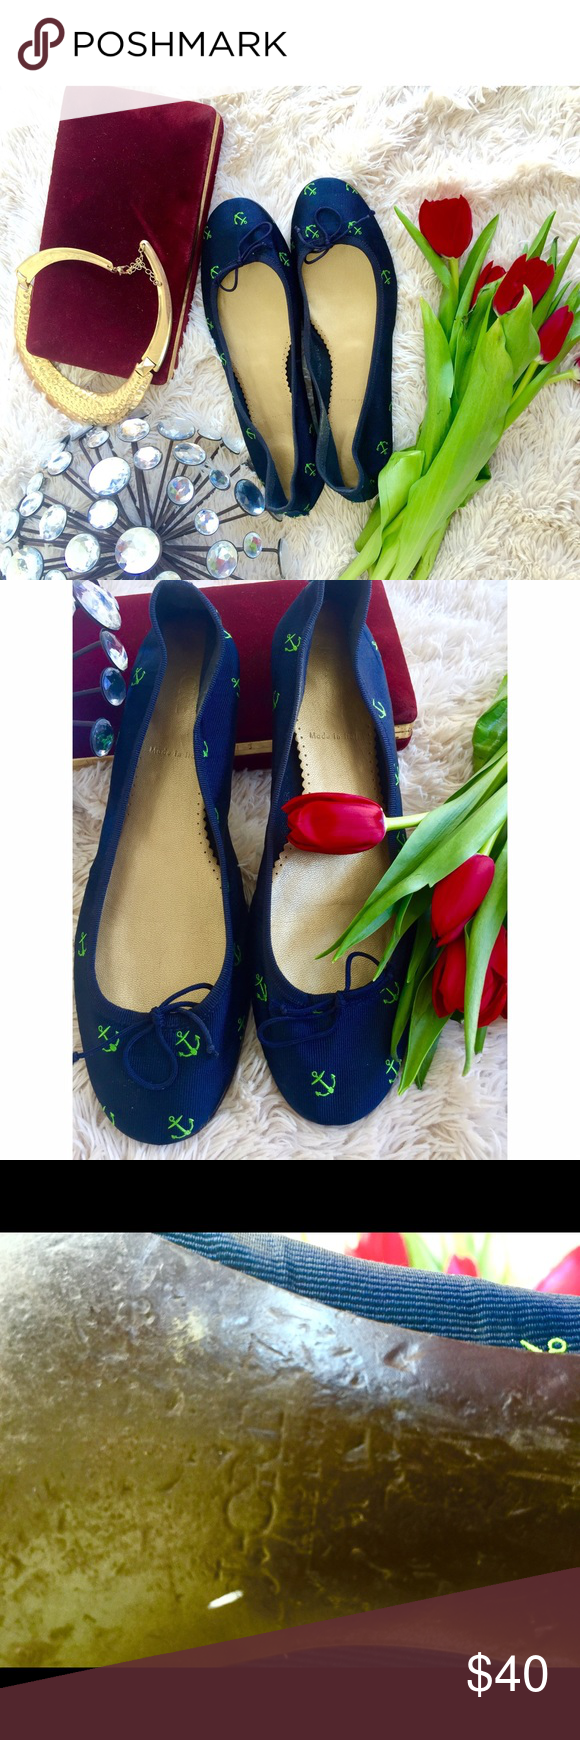 J. CREW FLATS Beautiful j crew flats in size 7.5. In great condition. J. Crew Shoes Flats & Loafers